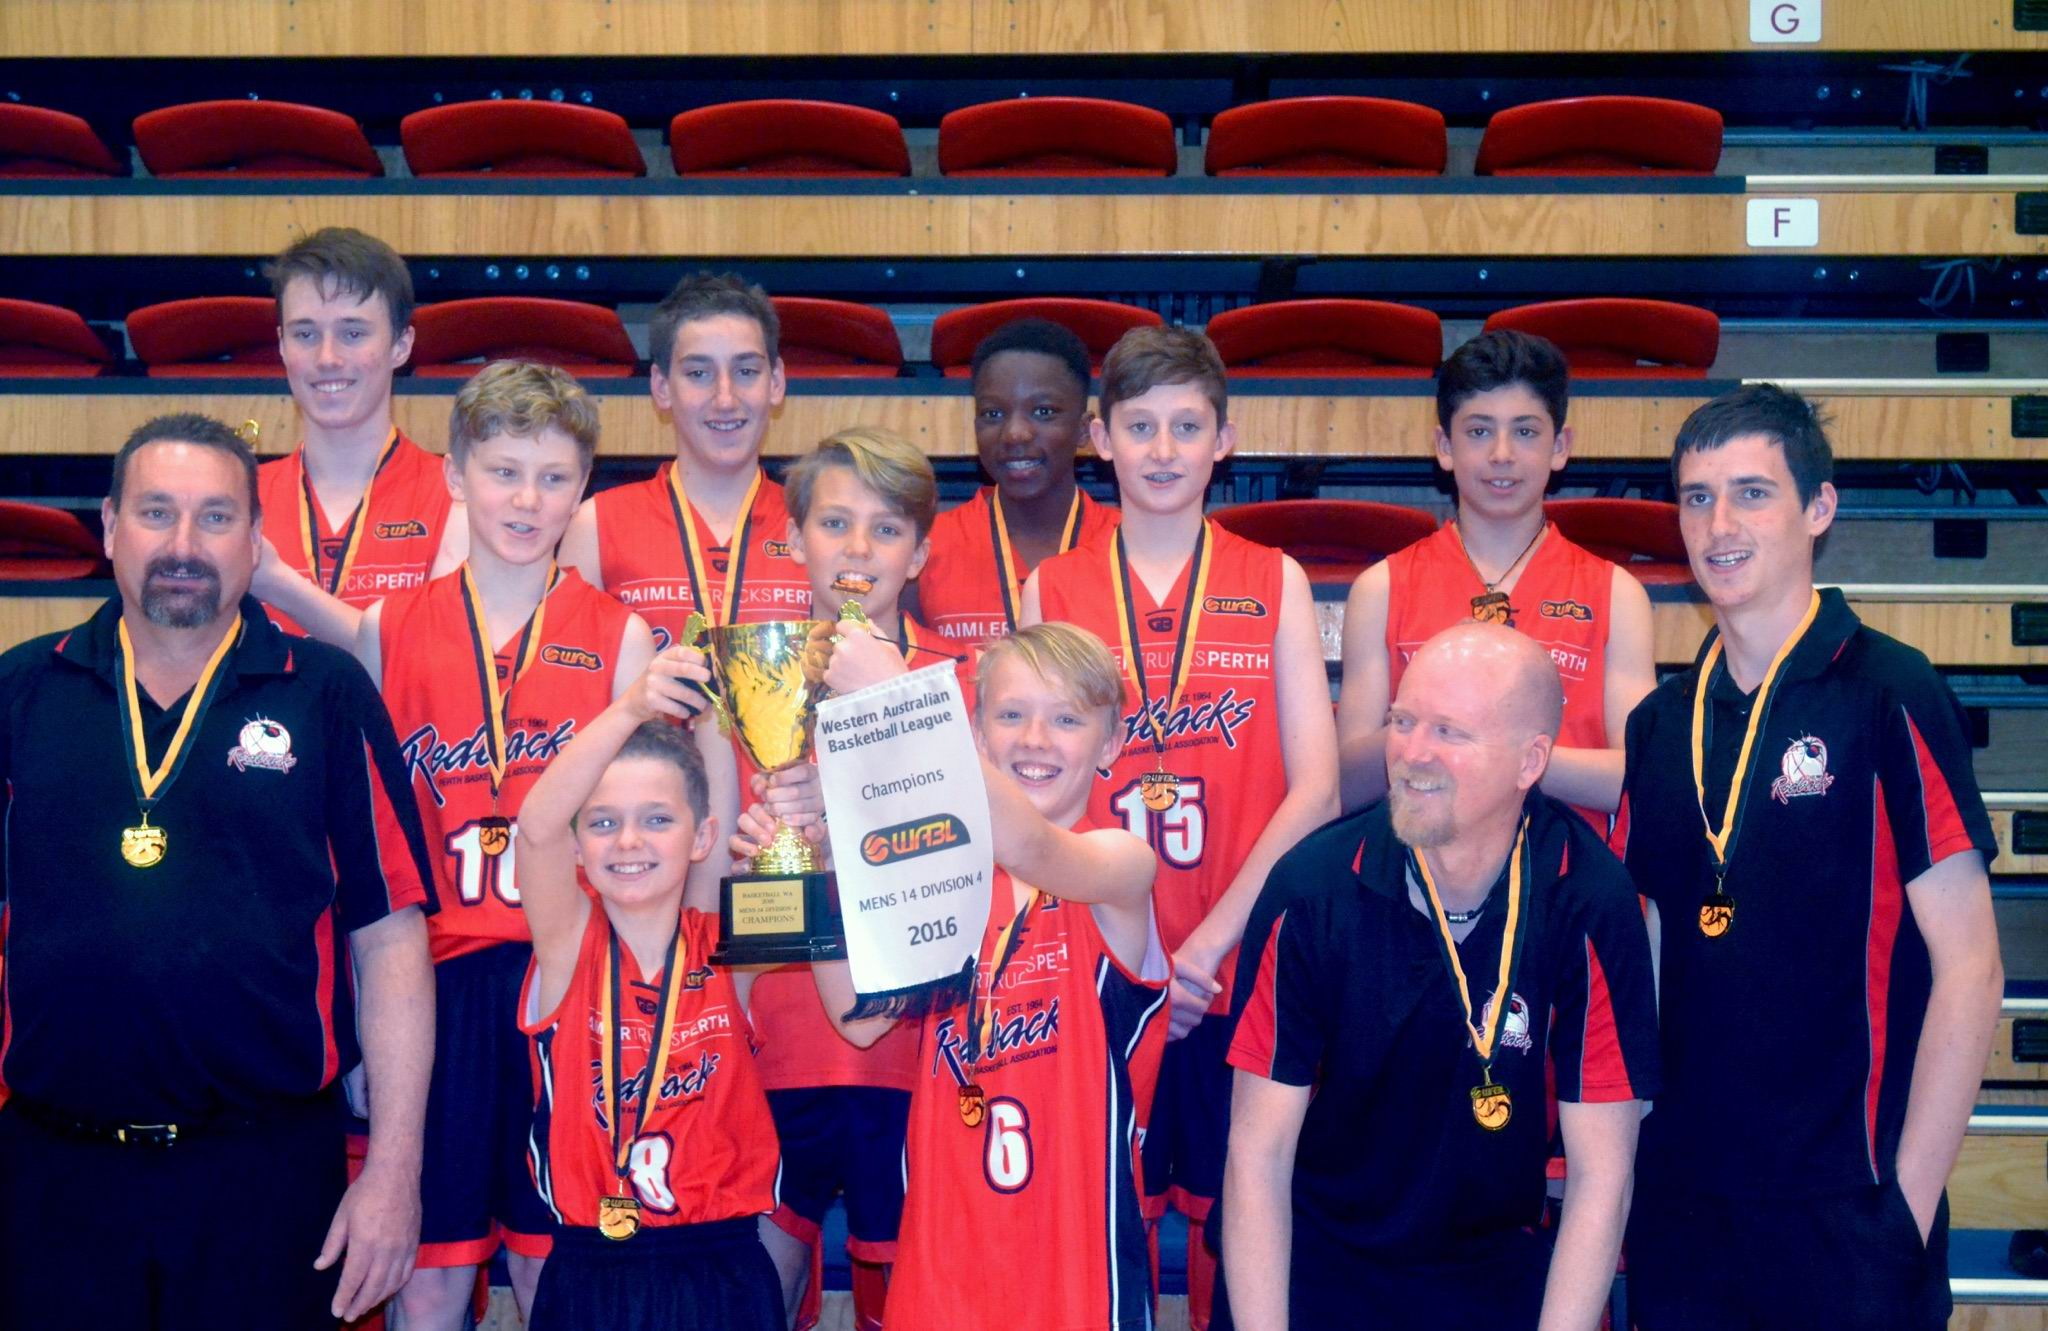 The Perth Redbacks under-14 4 boys team beat the Stirling Senators to win their grand final.